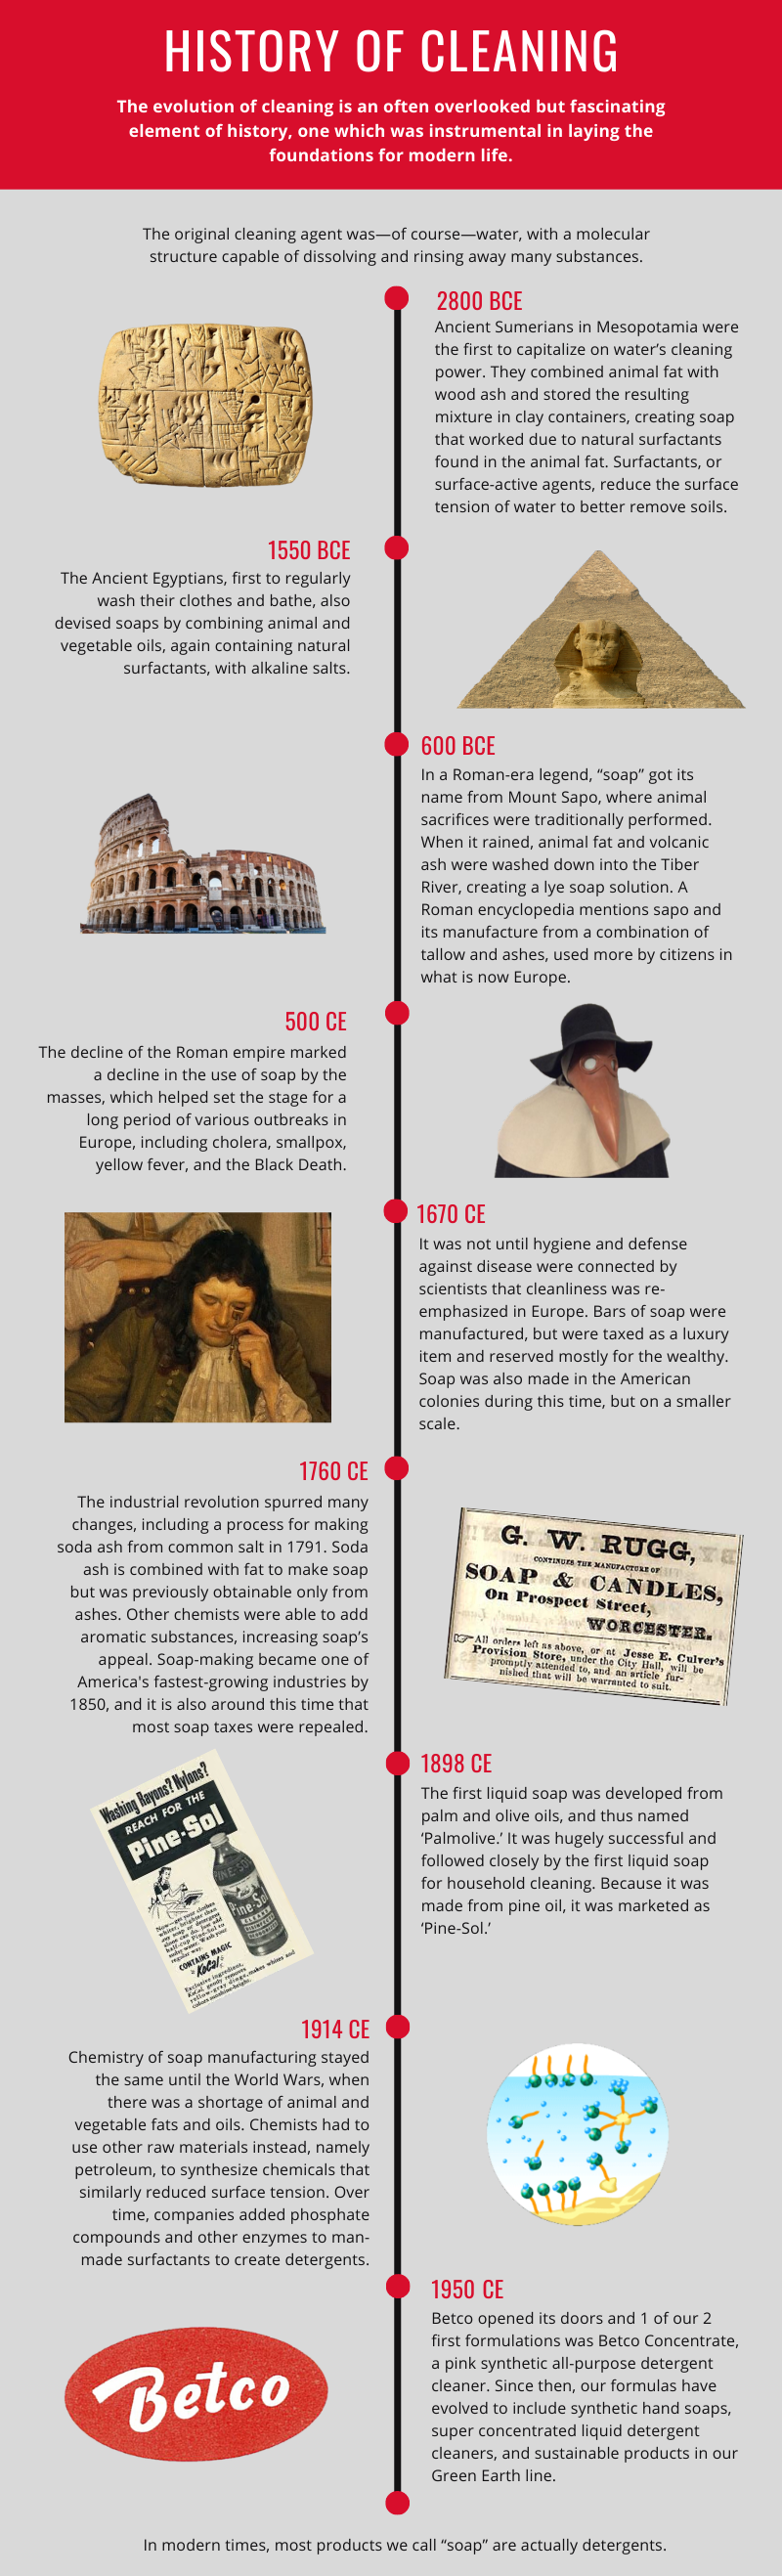 History of Cleaning Infographic